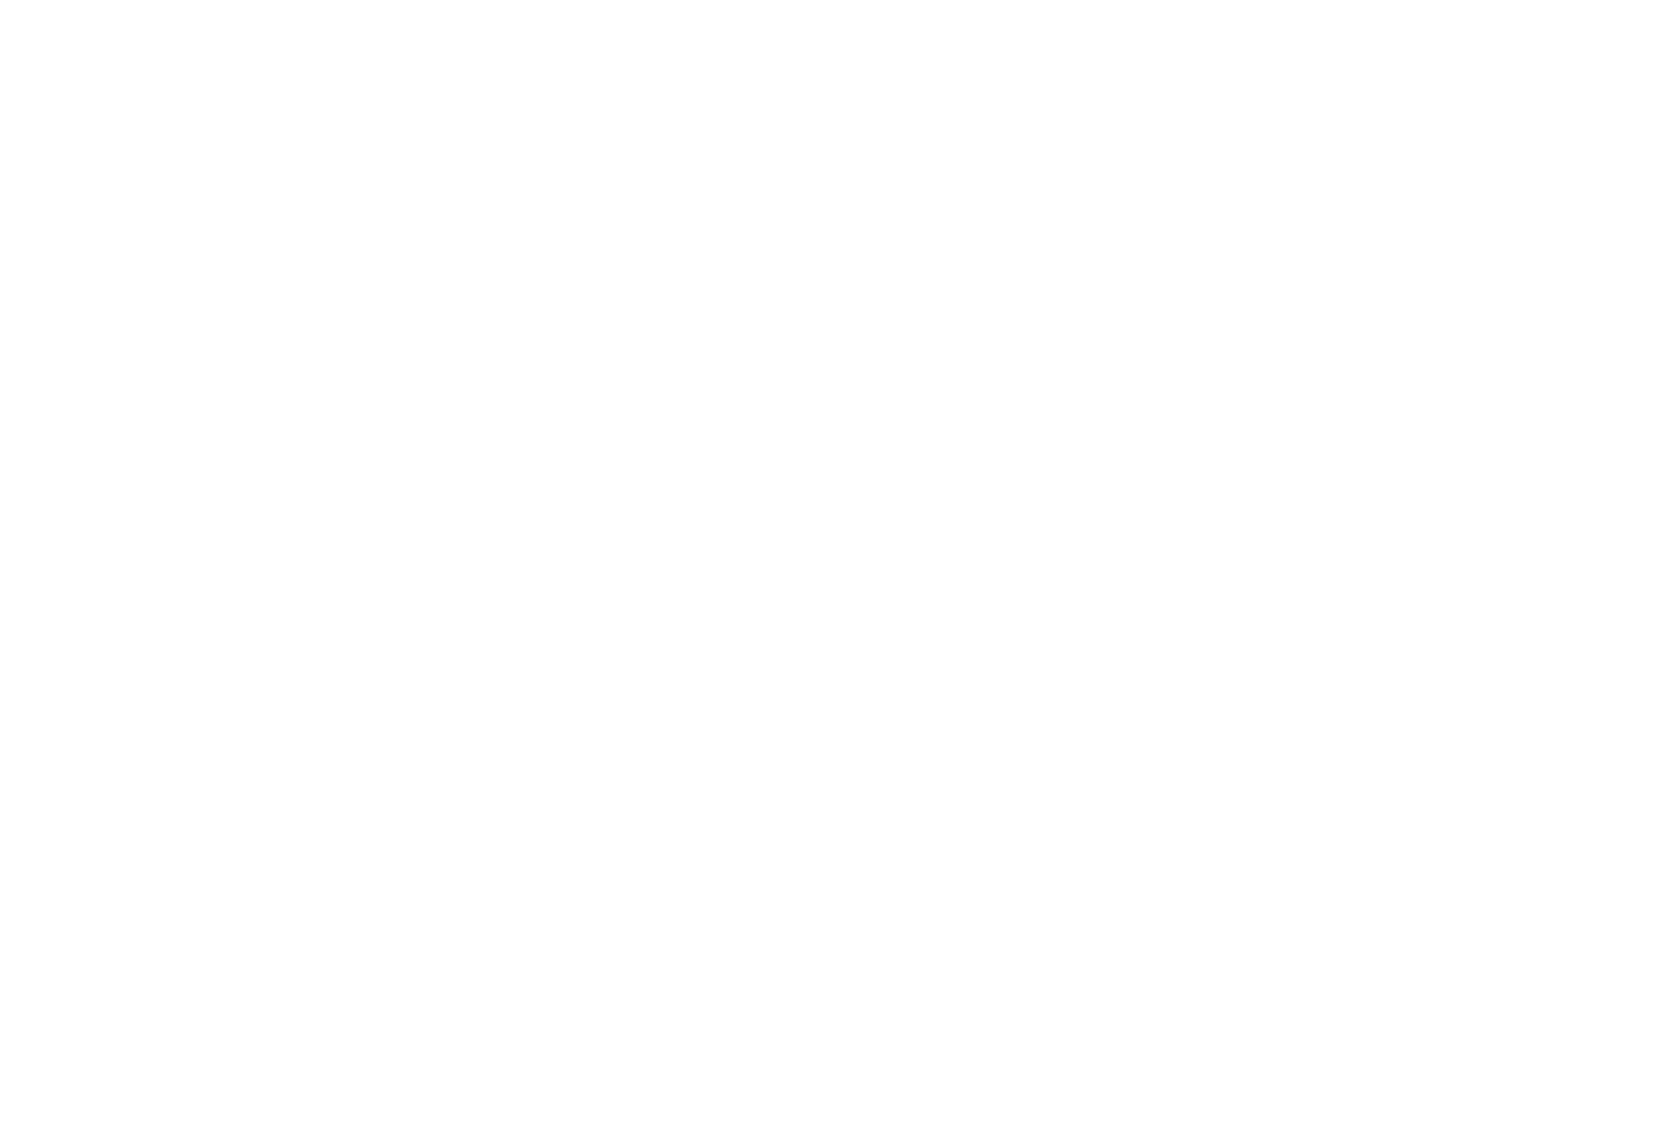 tilly-homepage-overlay2-03 (1).png